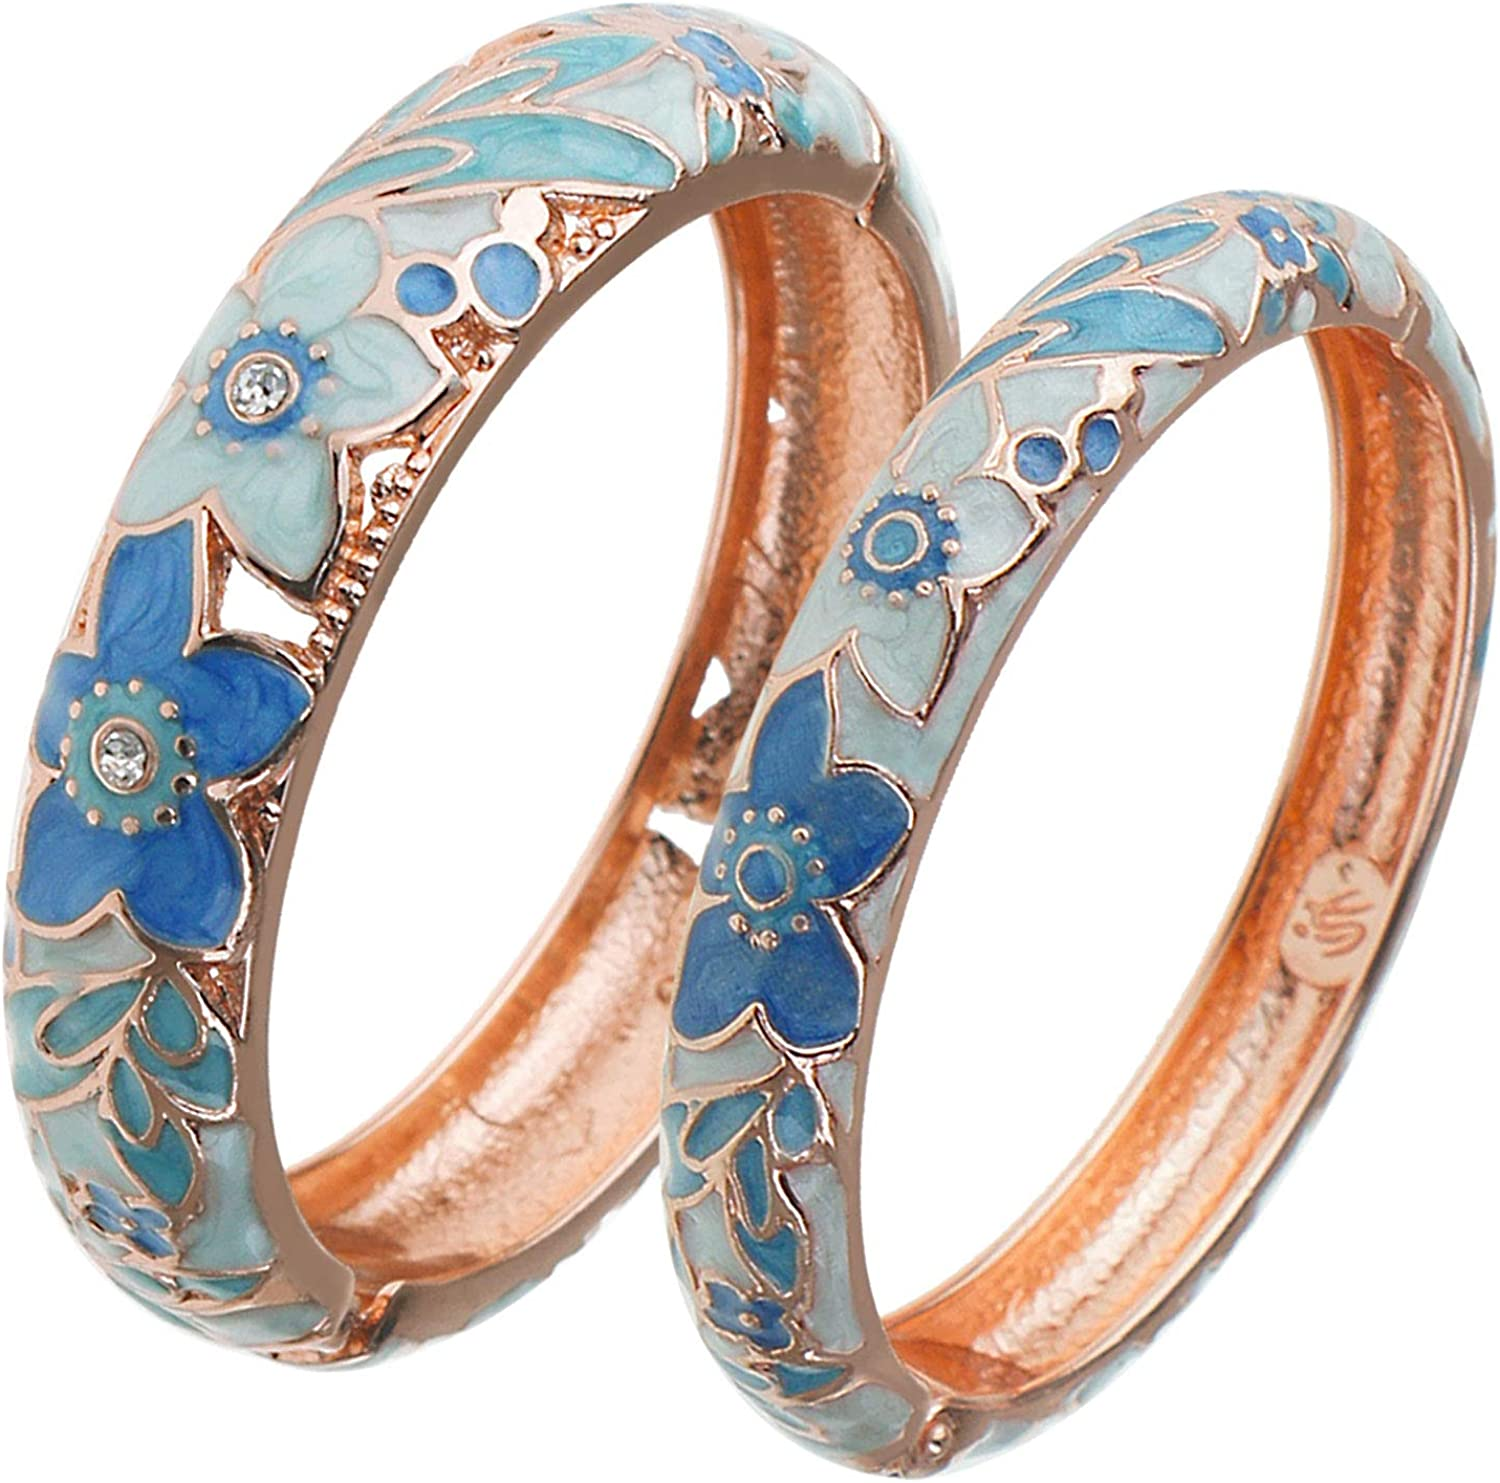 UJOY Vintage Jewelry Cloisonne Handcrafted Enameled Gorgeous Rhinestone Rose Gold Hinged Cuff Bracelet Bangles Gifts 88A10